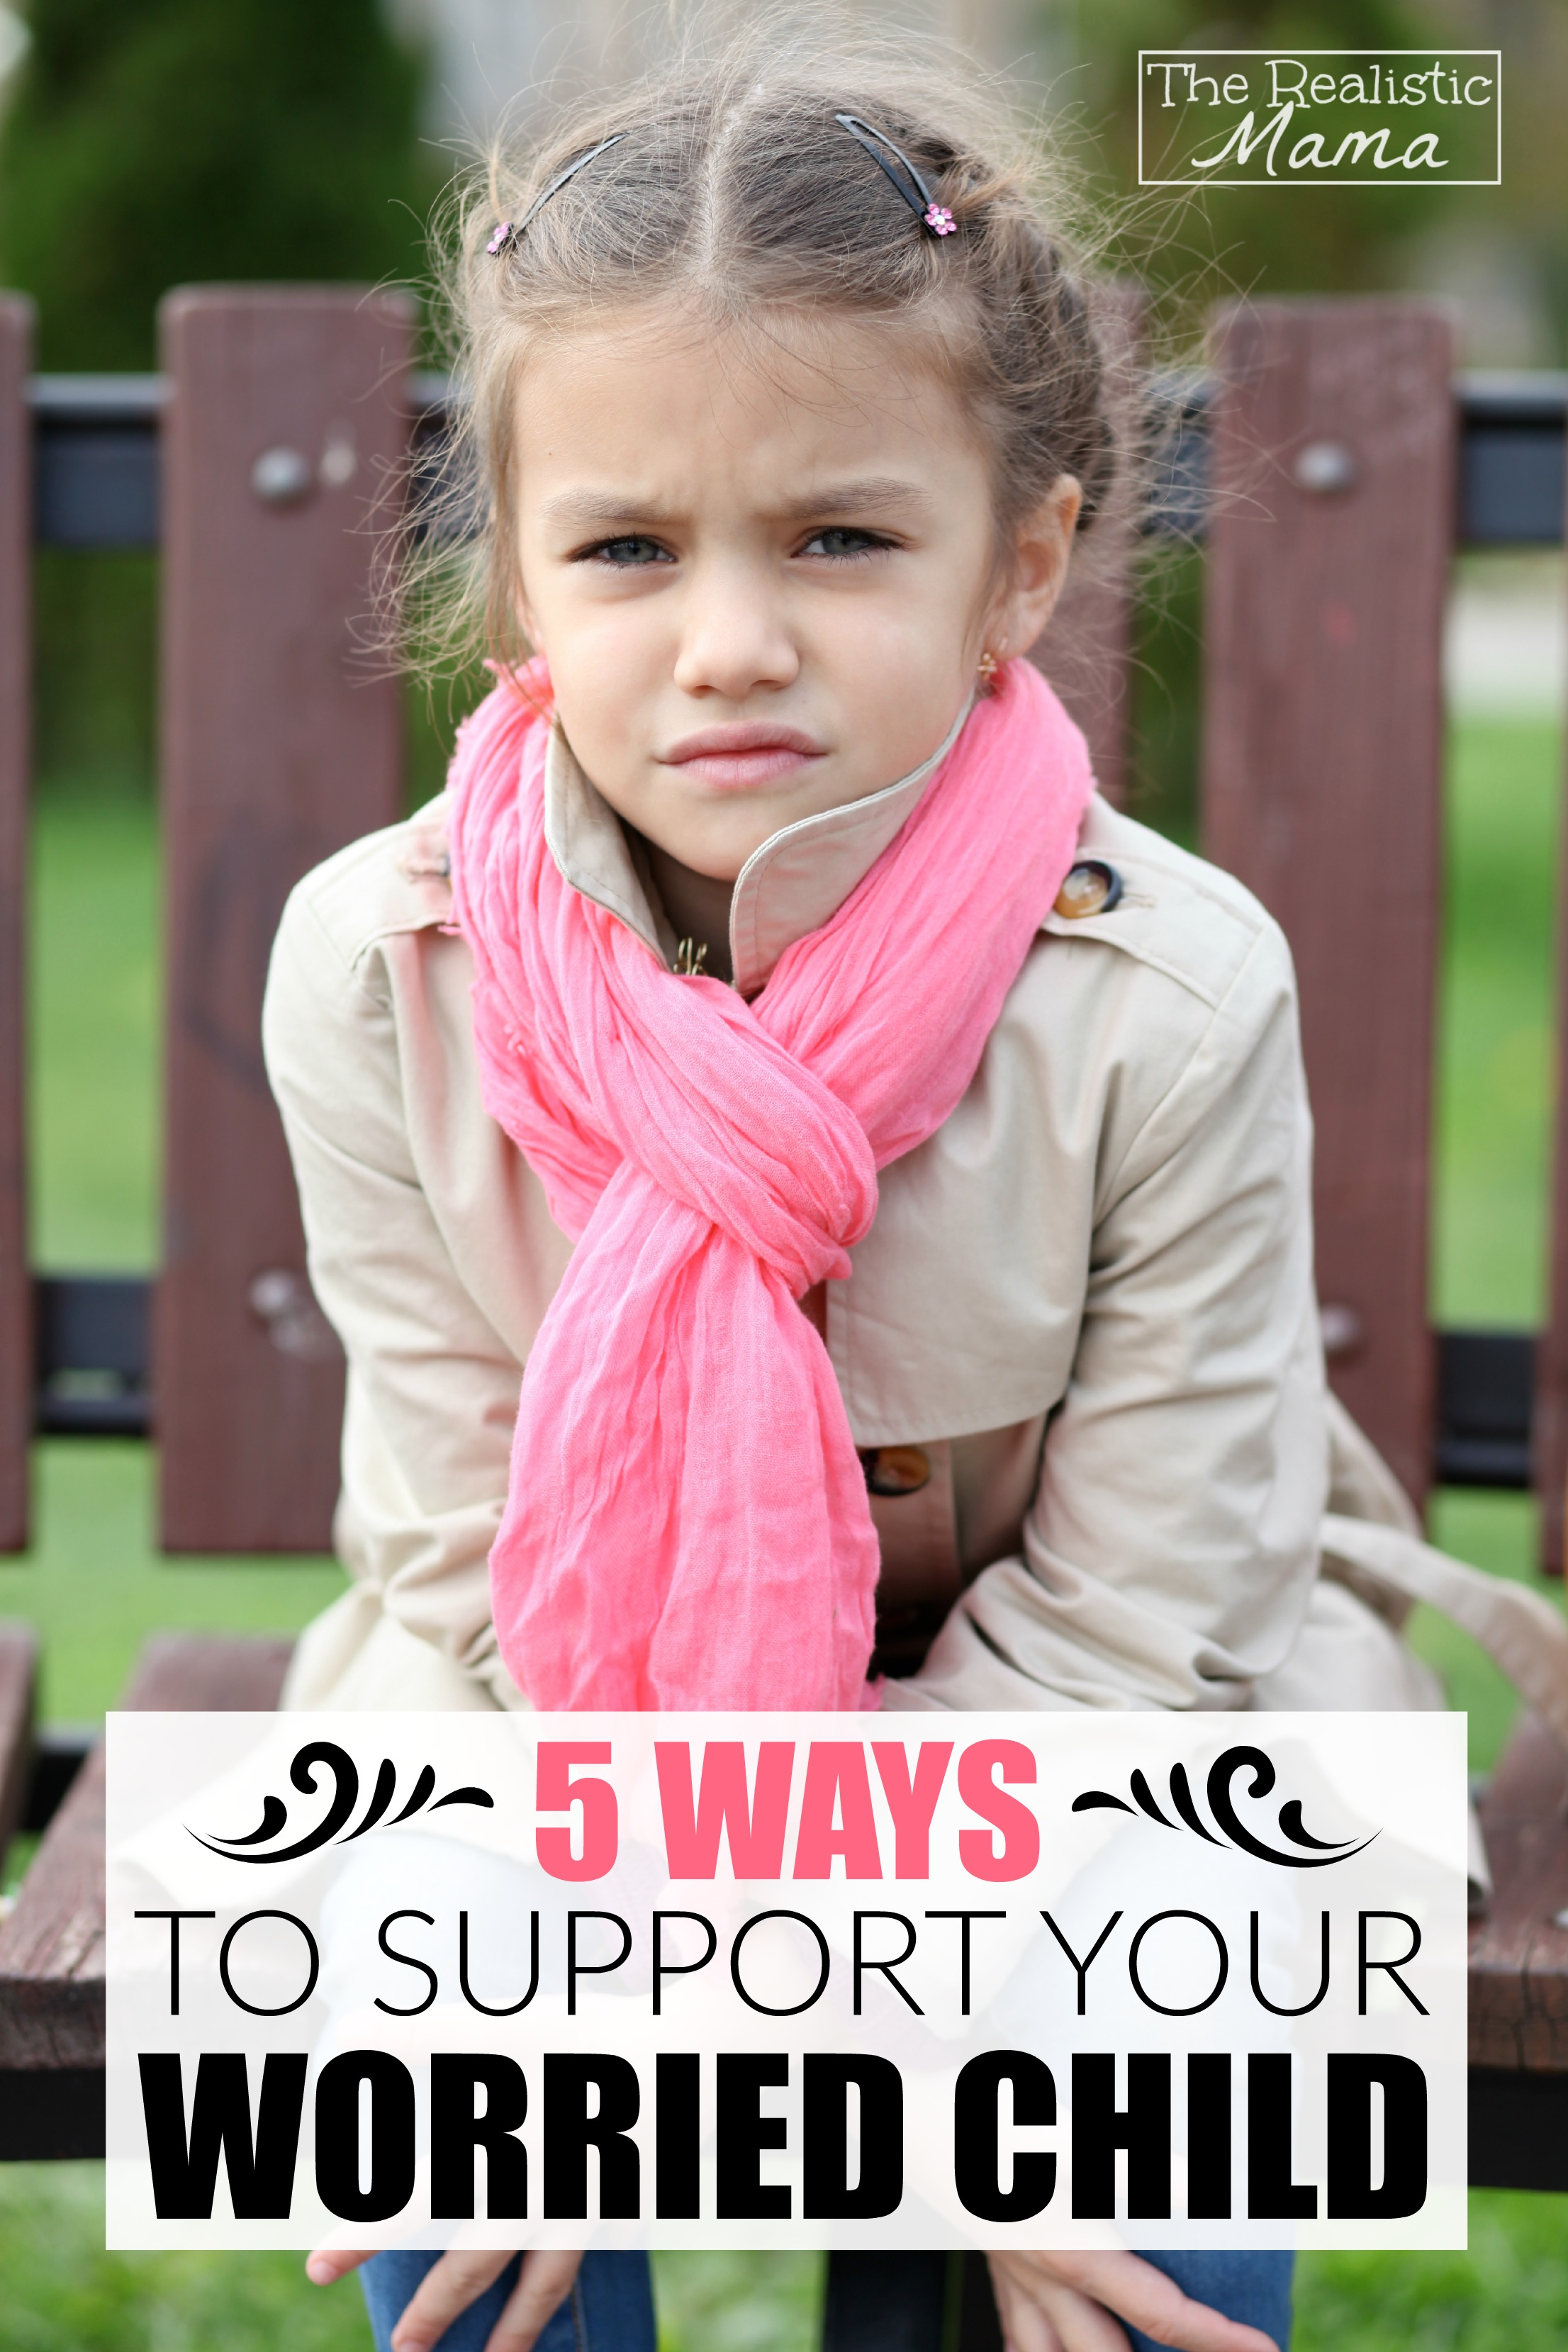 Great Tips for Supporting Your Worried Child